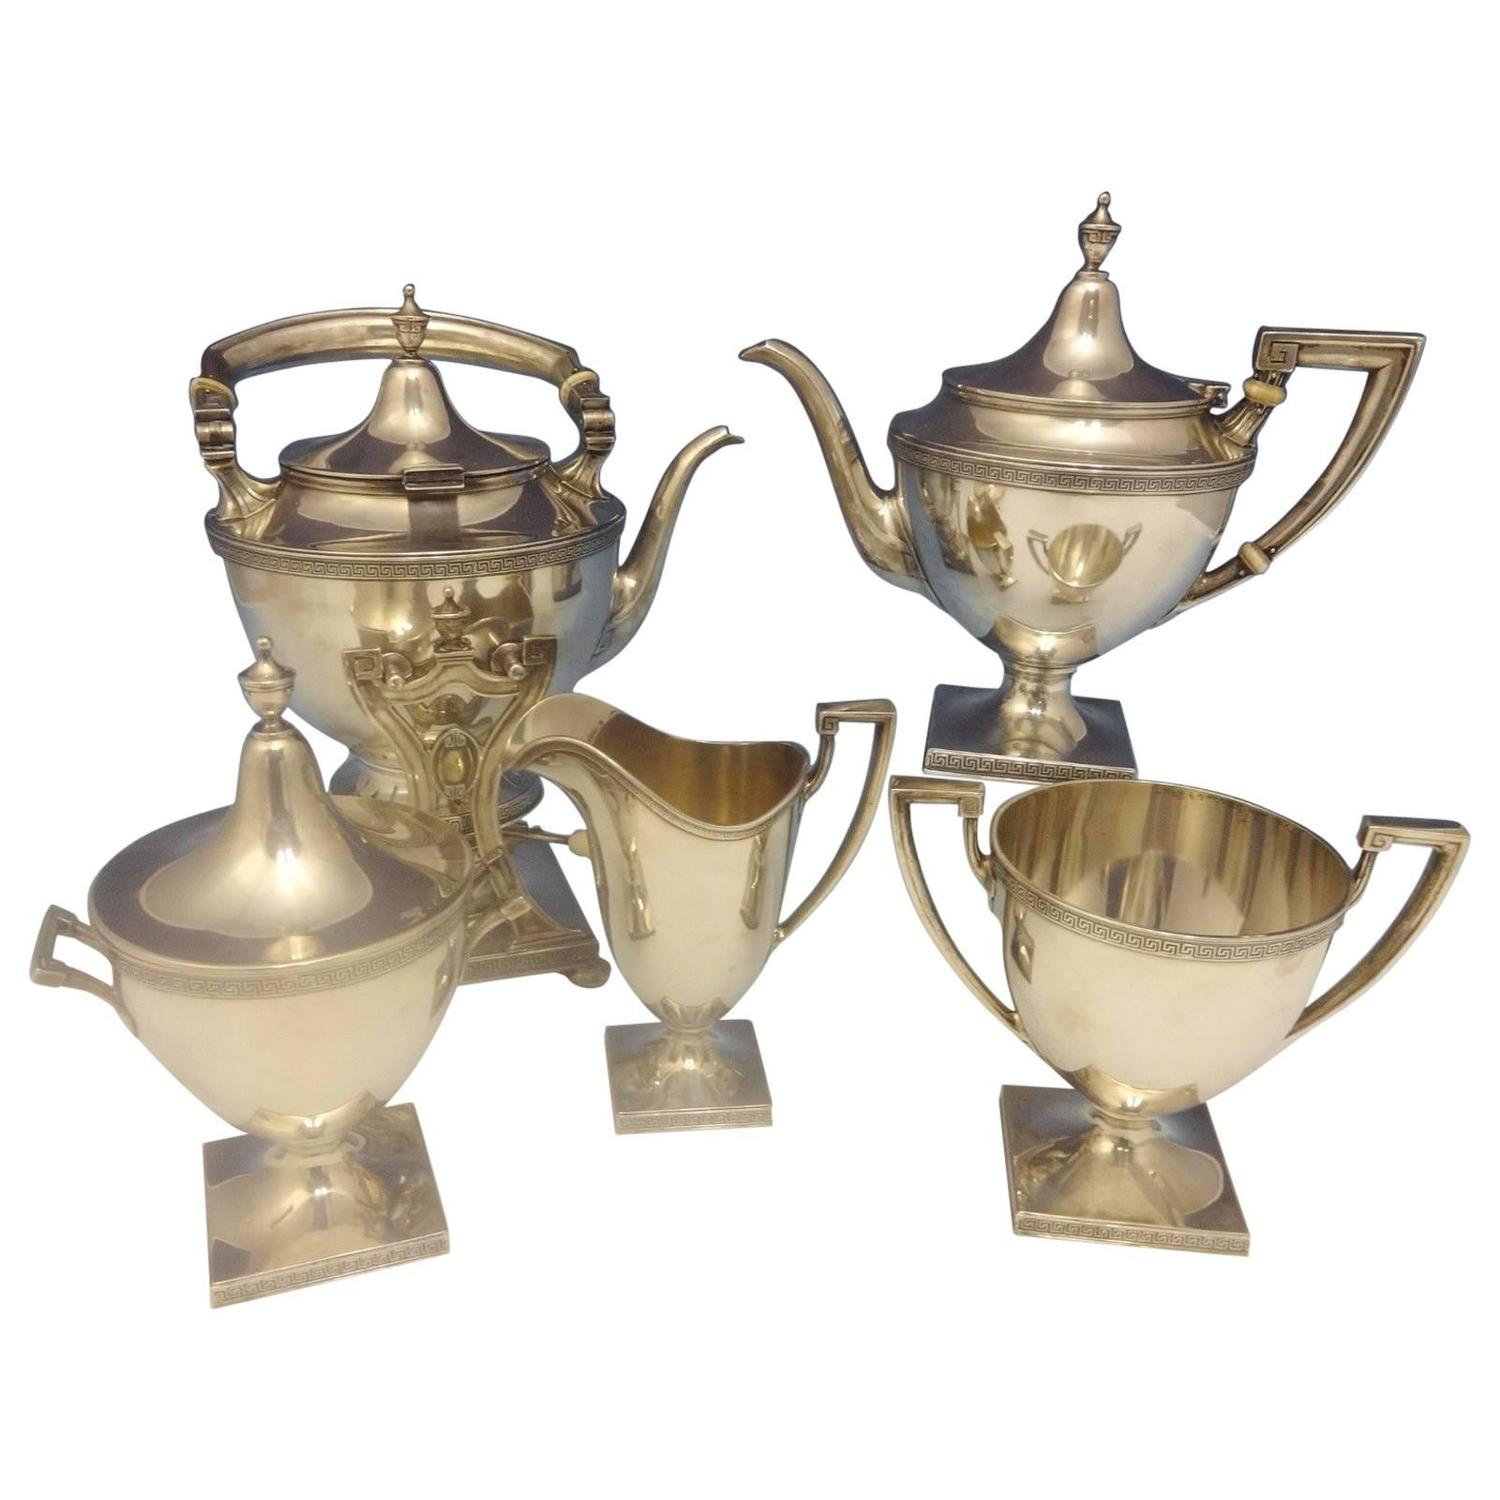 Terrific gorham silver for kitchen and dining sets with gorham silver patterns